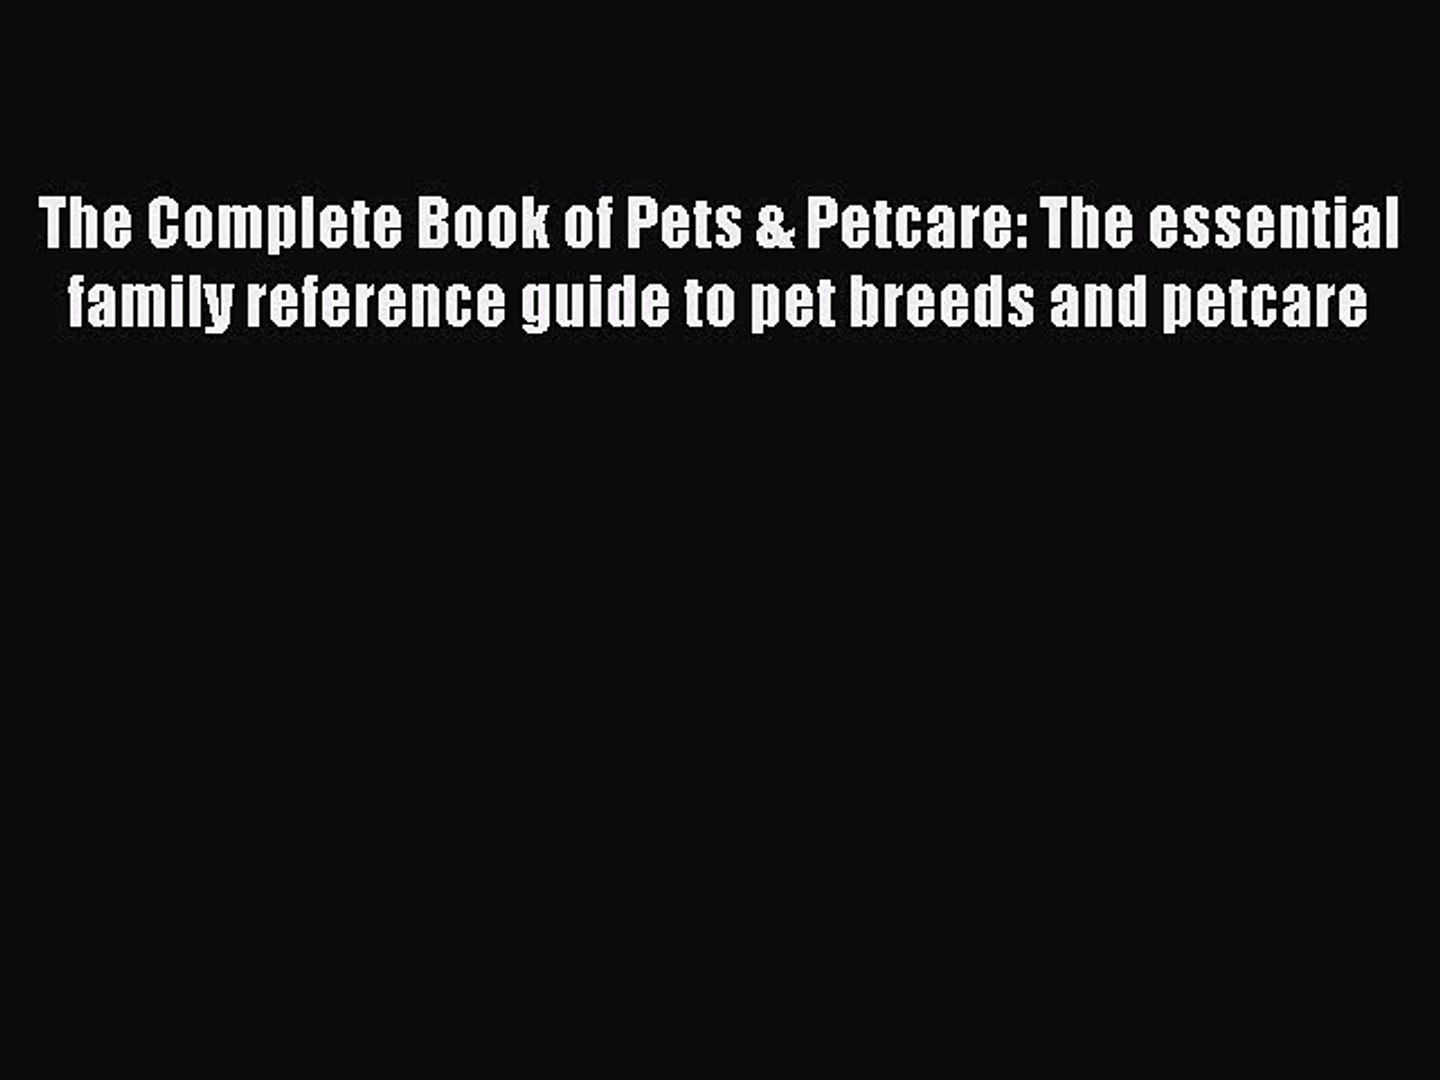 Download The Complete Book of Pets & Petcare: The essential family reference guide to pet breeds